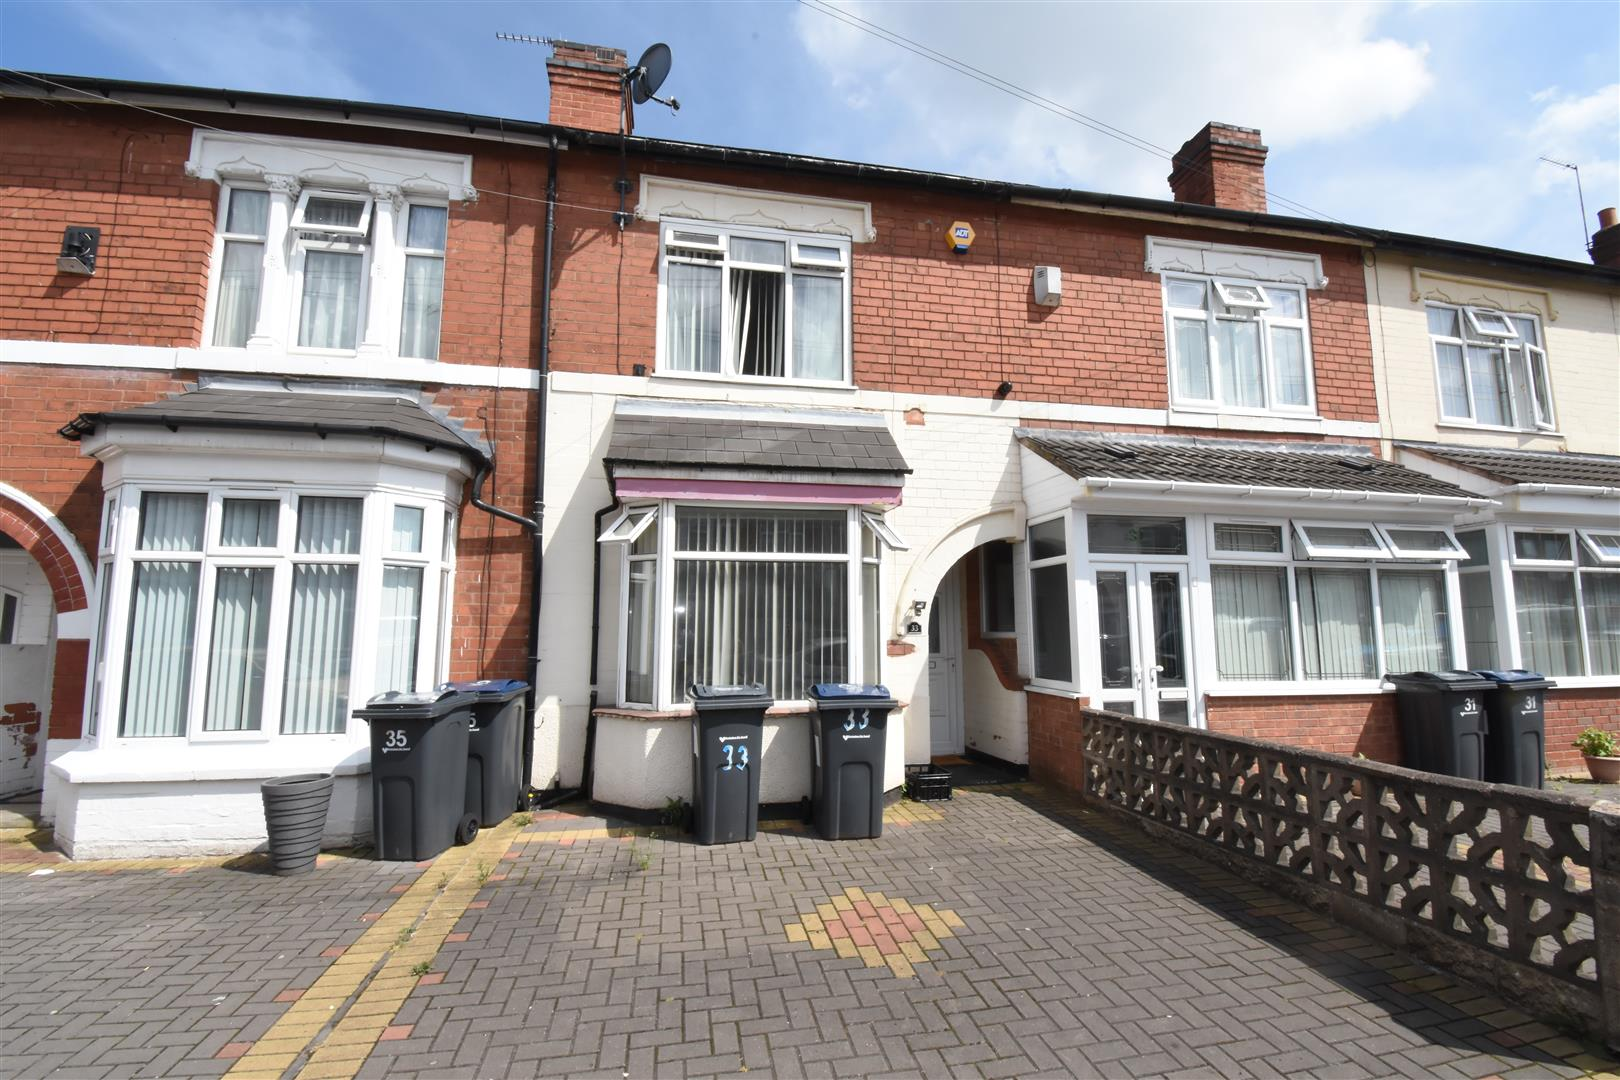 3 bed house for sale in Southern Road, Birmingham, B8